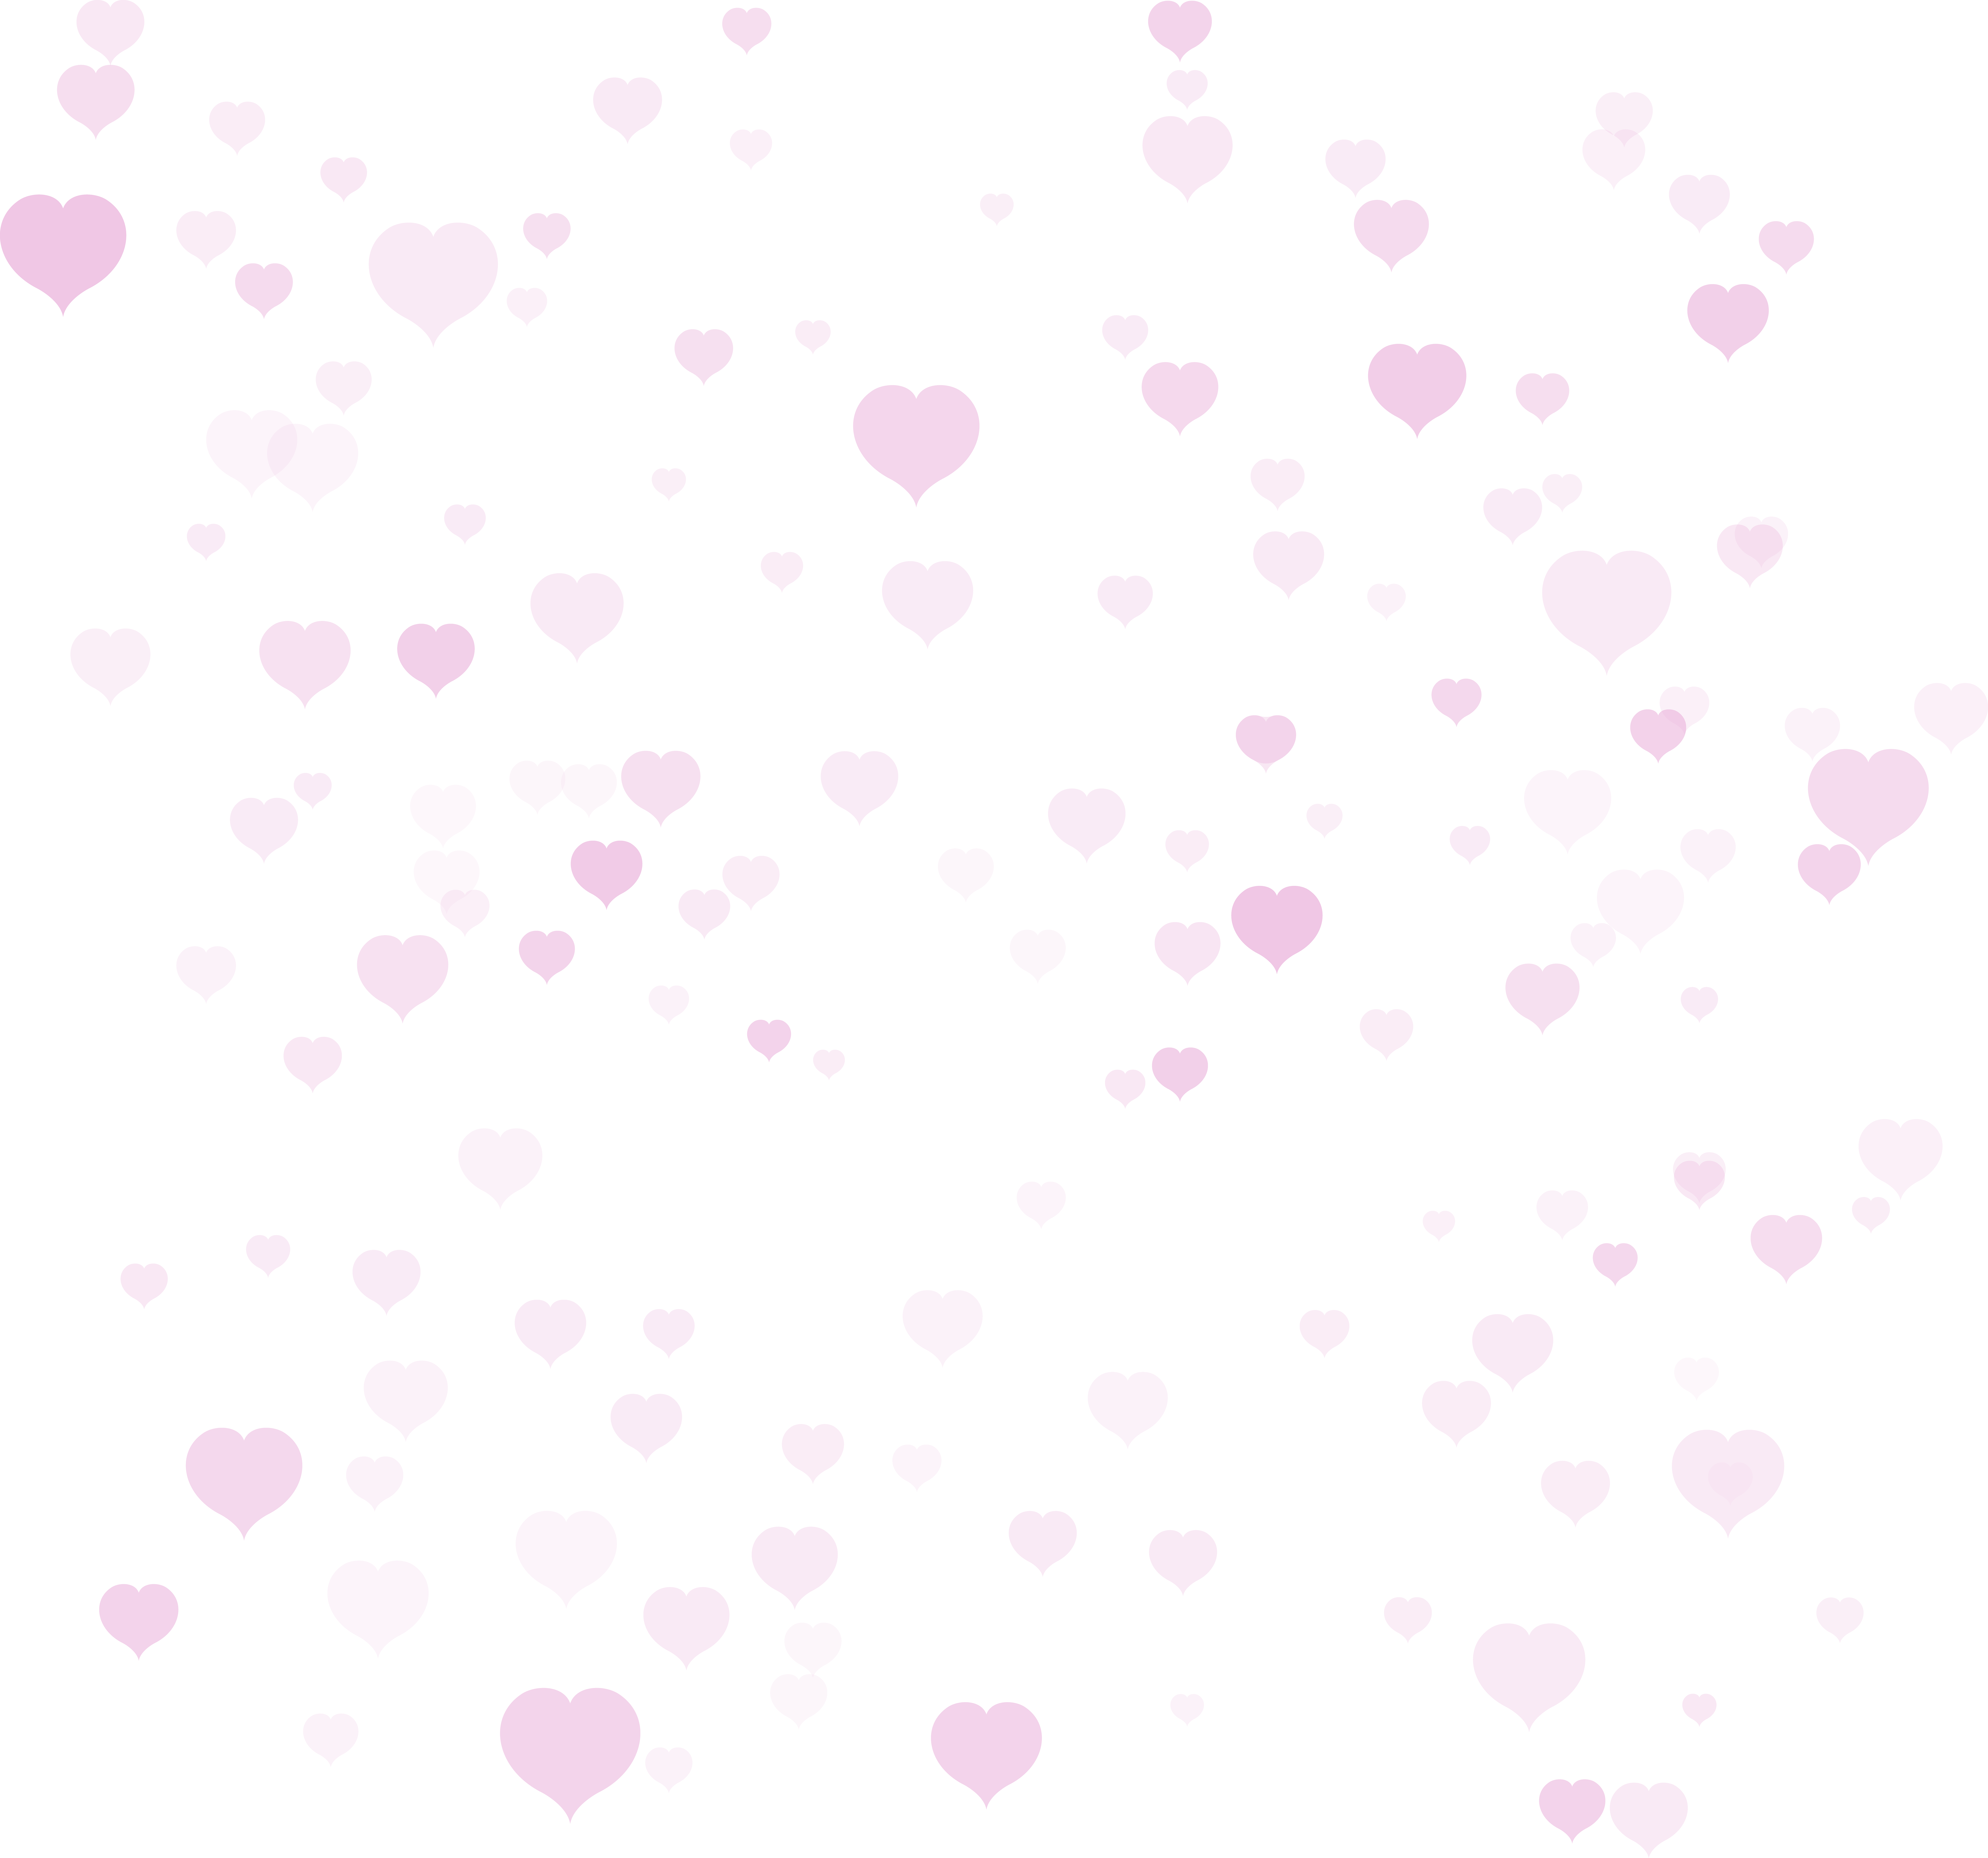 Hearts for Background Transparent PNG Clip Art.